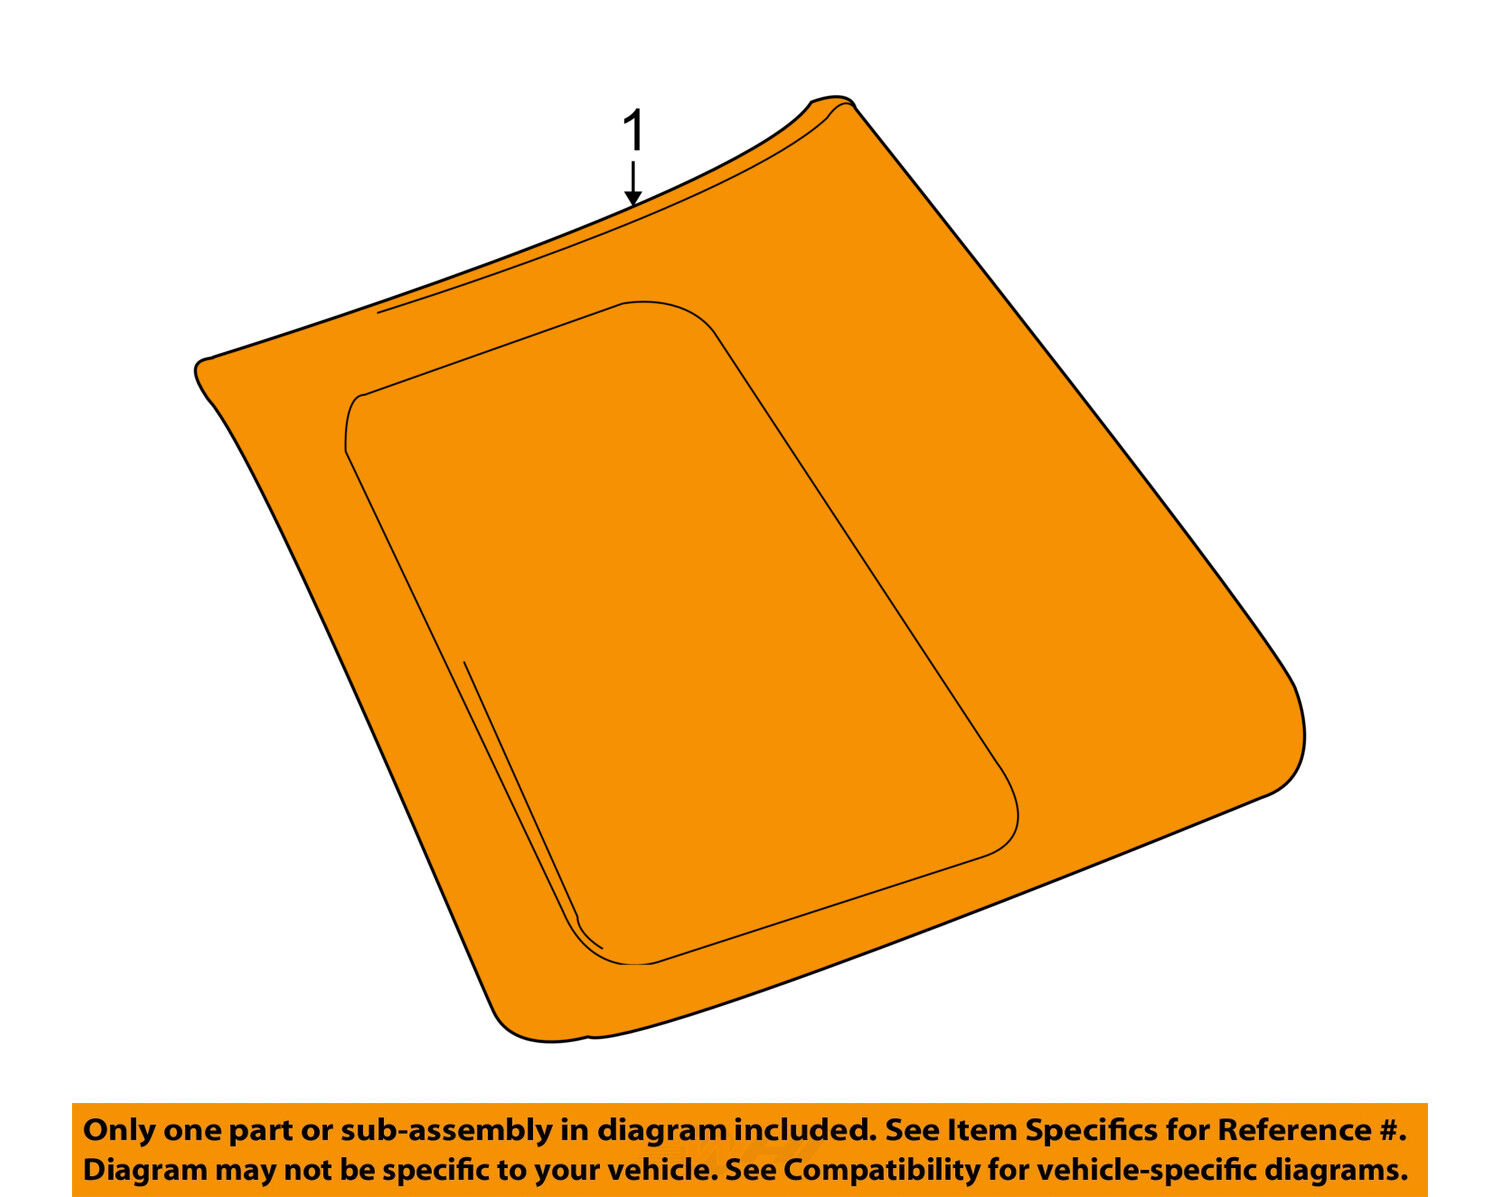 Toyota Oem Fj Cruiser Rear Quarter Panel Side Window Glass Right 1993 Land Engine Diagram 1 Of 2only 5 Available